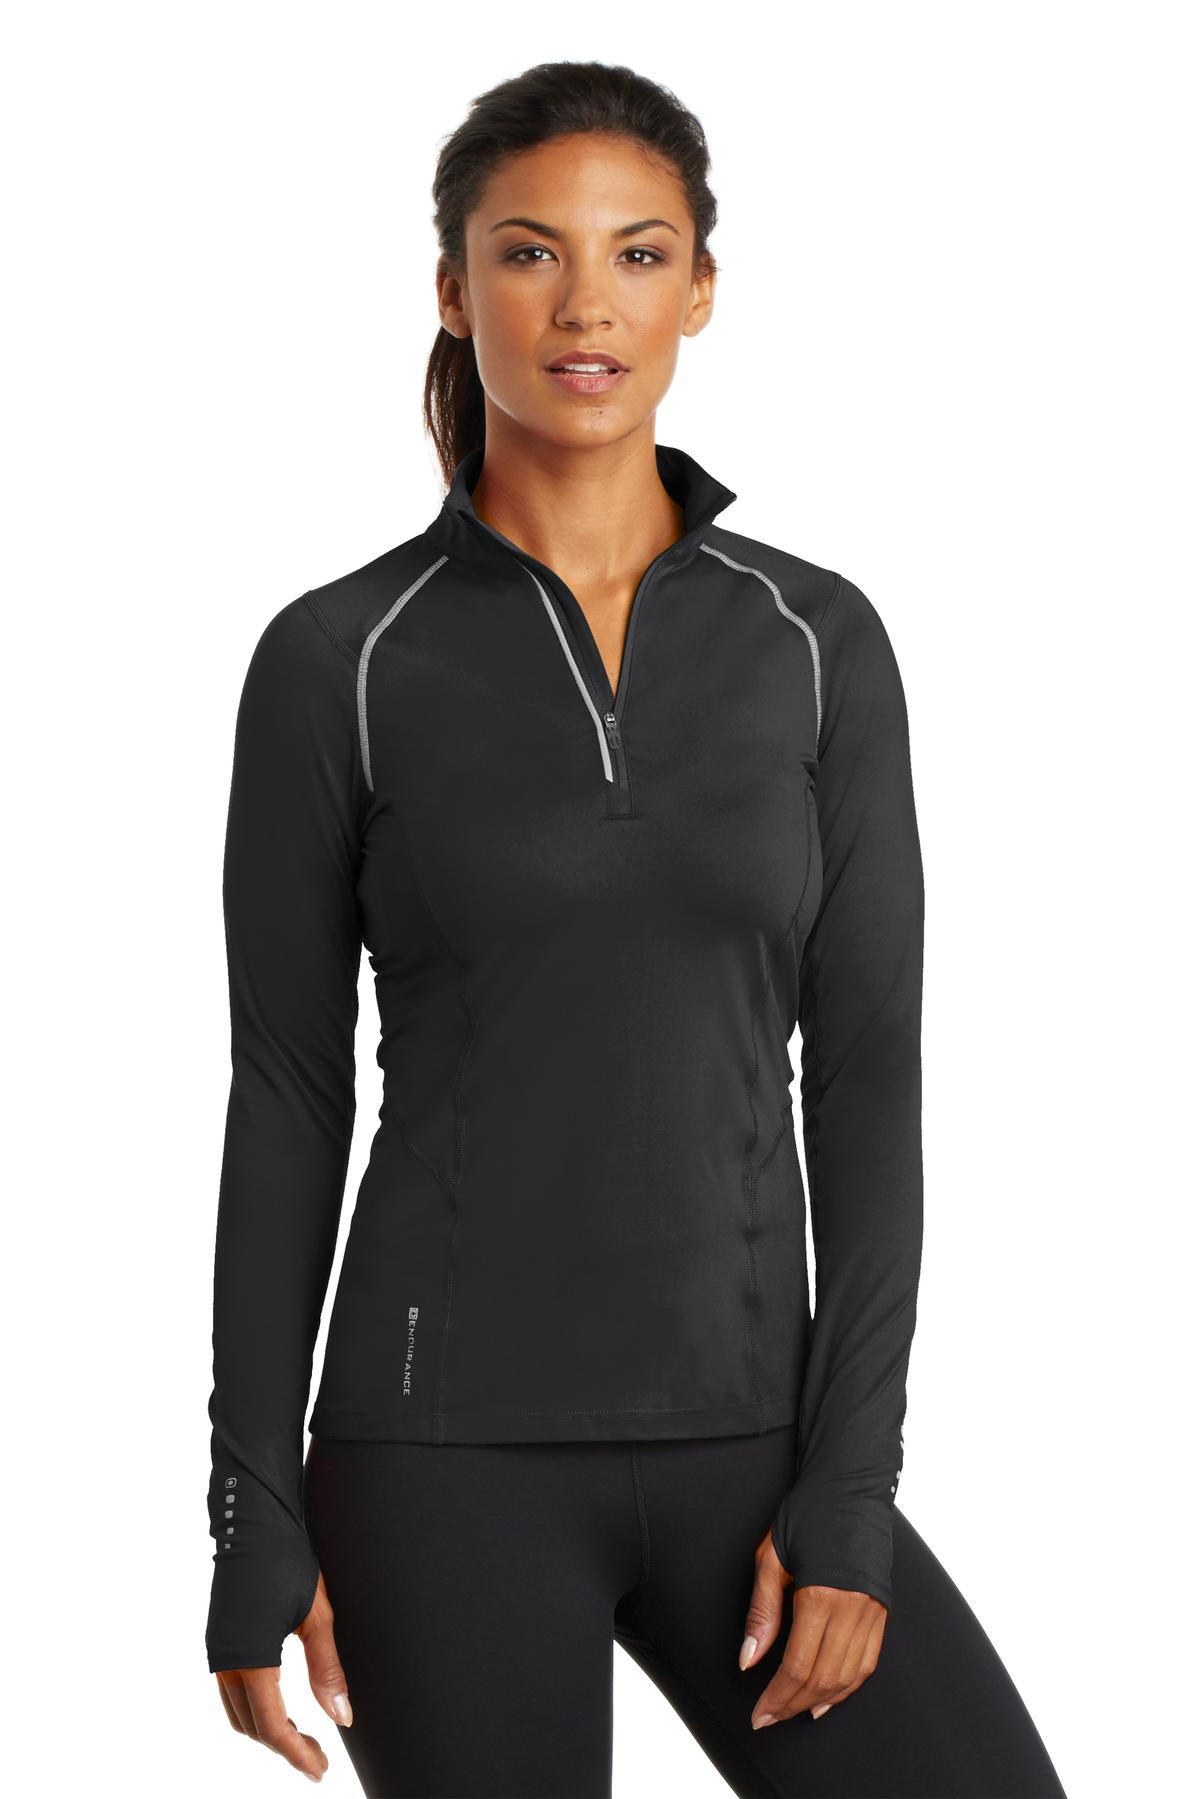 364691272-120 - OGIO® ENDURANCE Ladies' Nexus 1/4-Zip Pullover Shirt - thumbnail